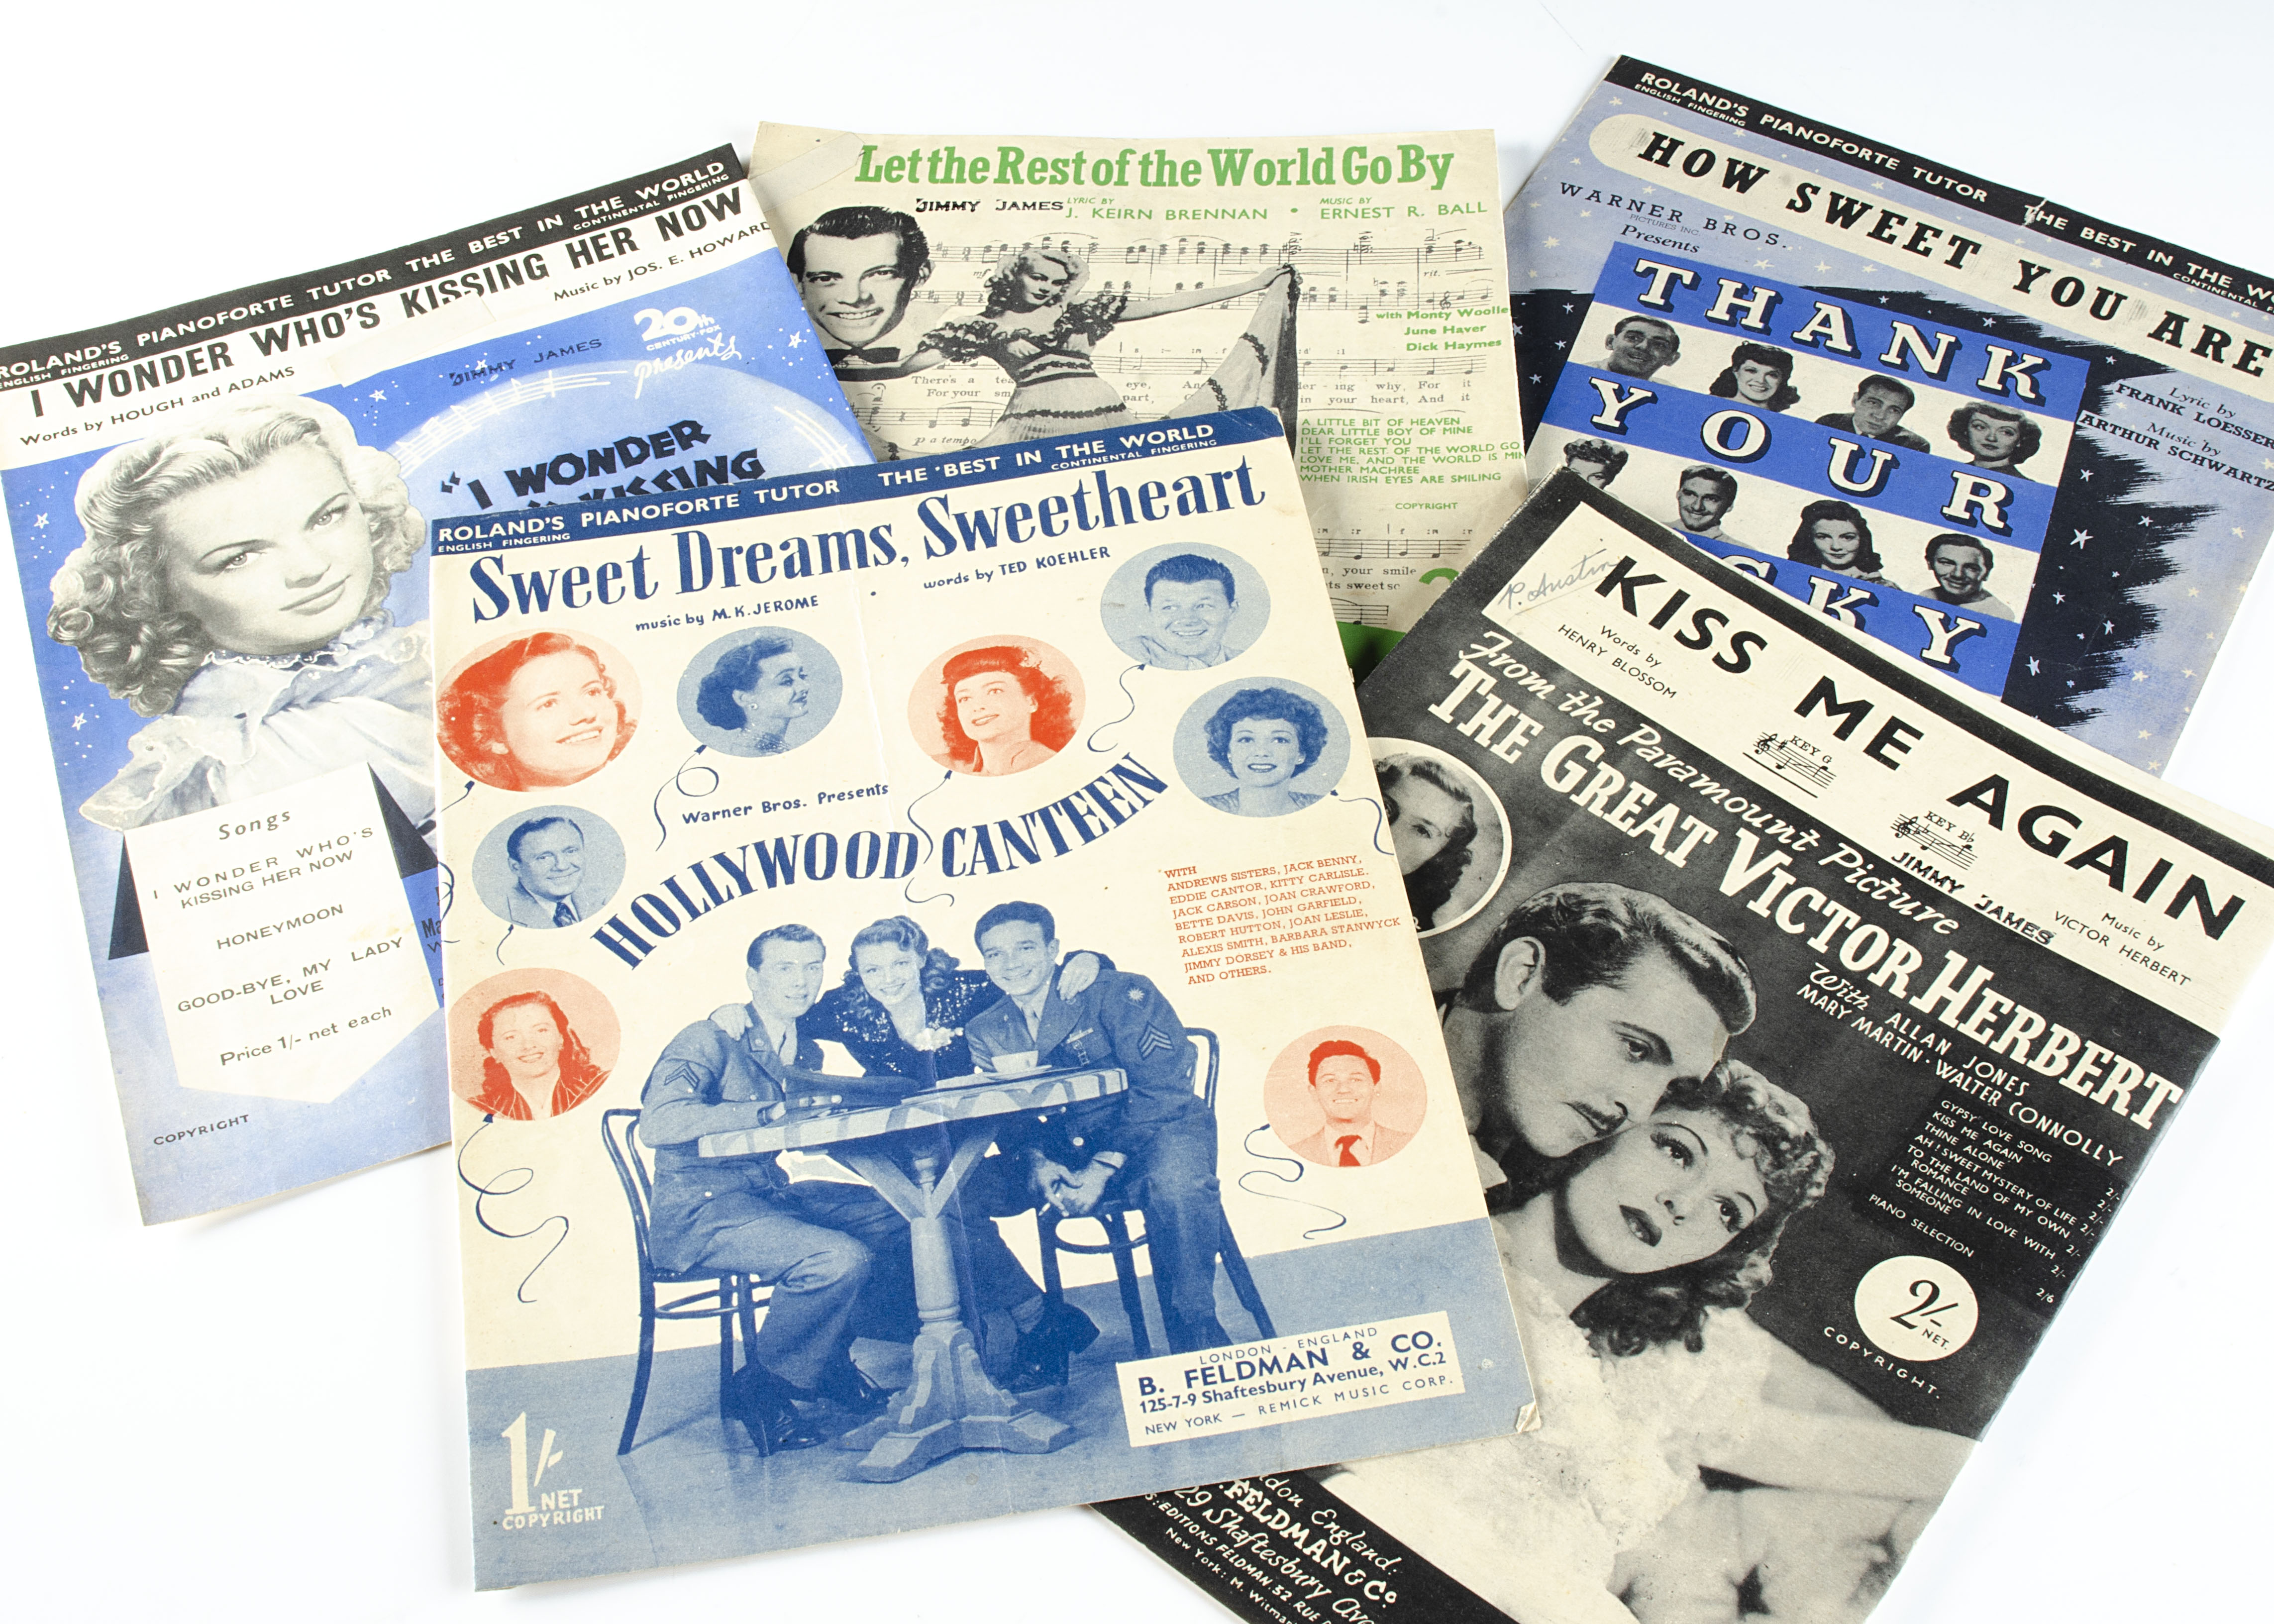 Sheet Music, approximately forty pieces of sheet music, mainly from Films of the 1940/50s with cover